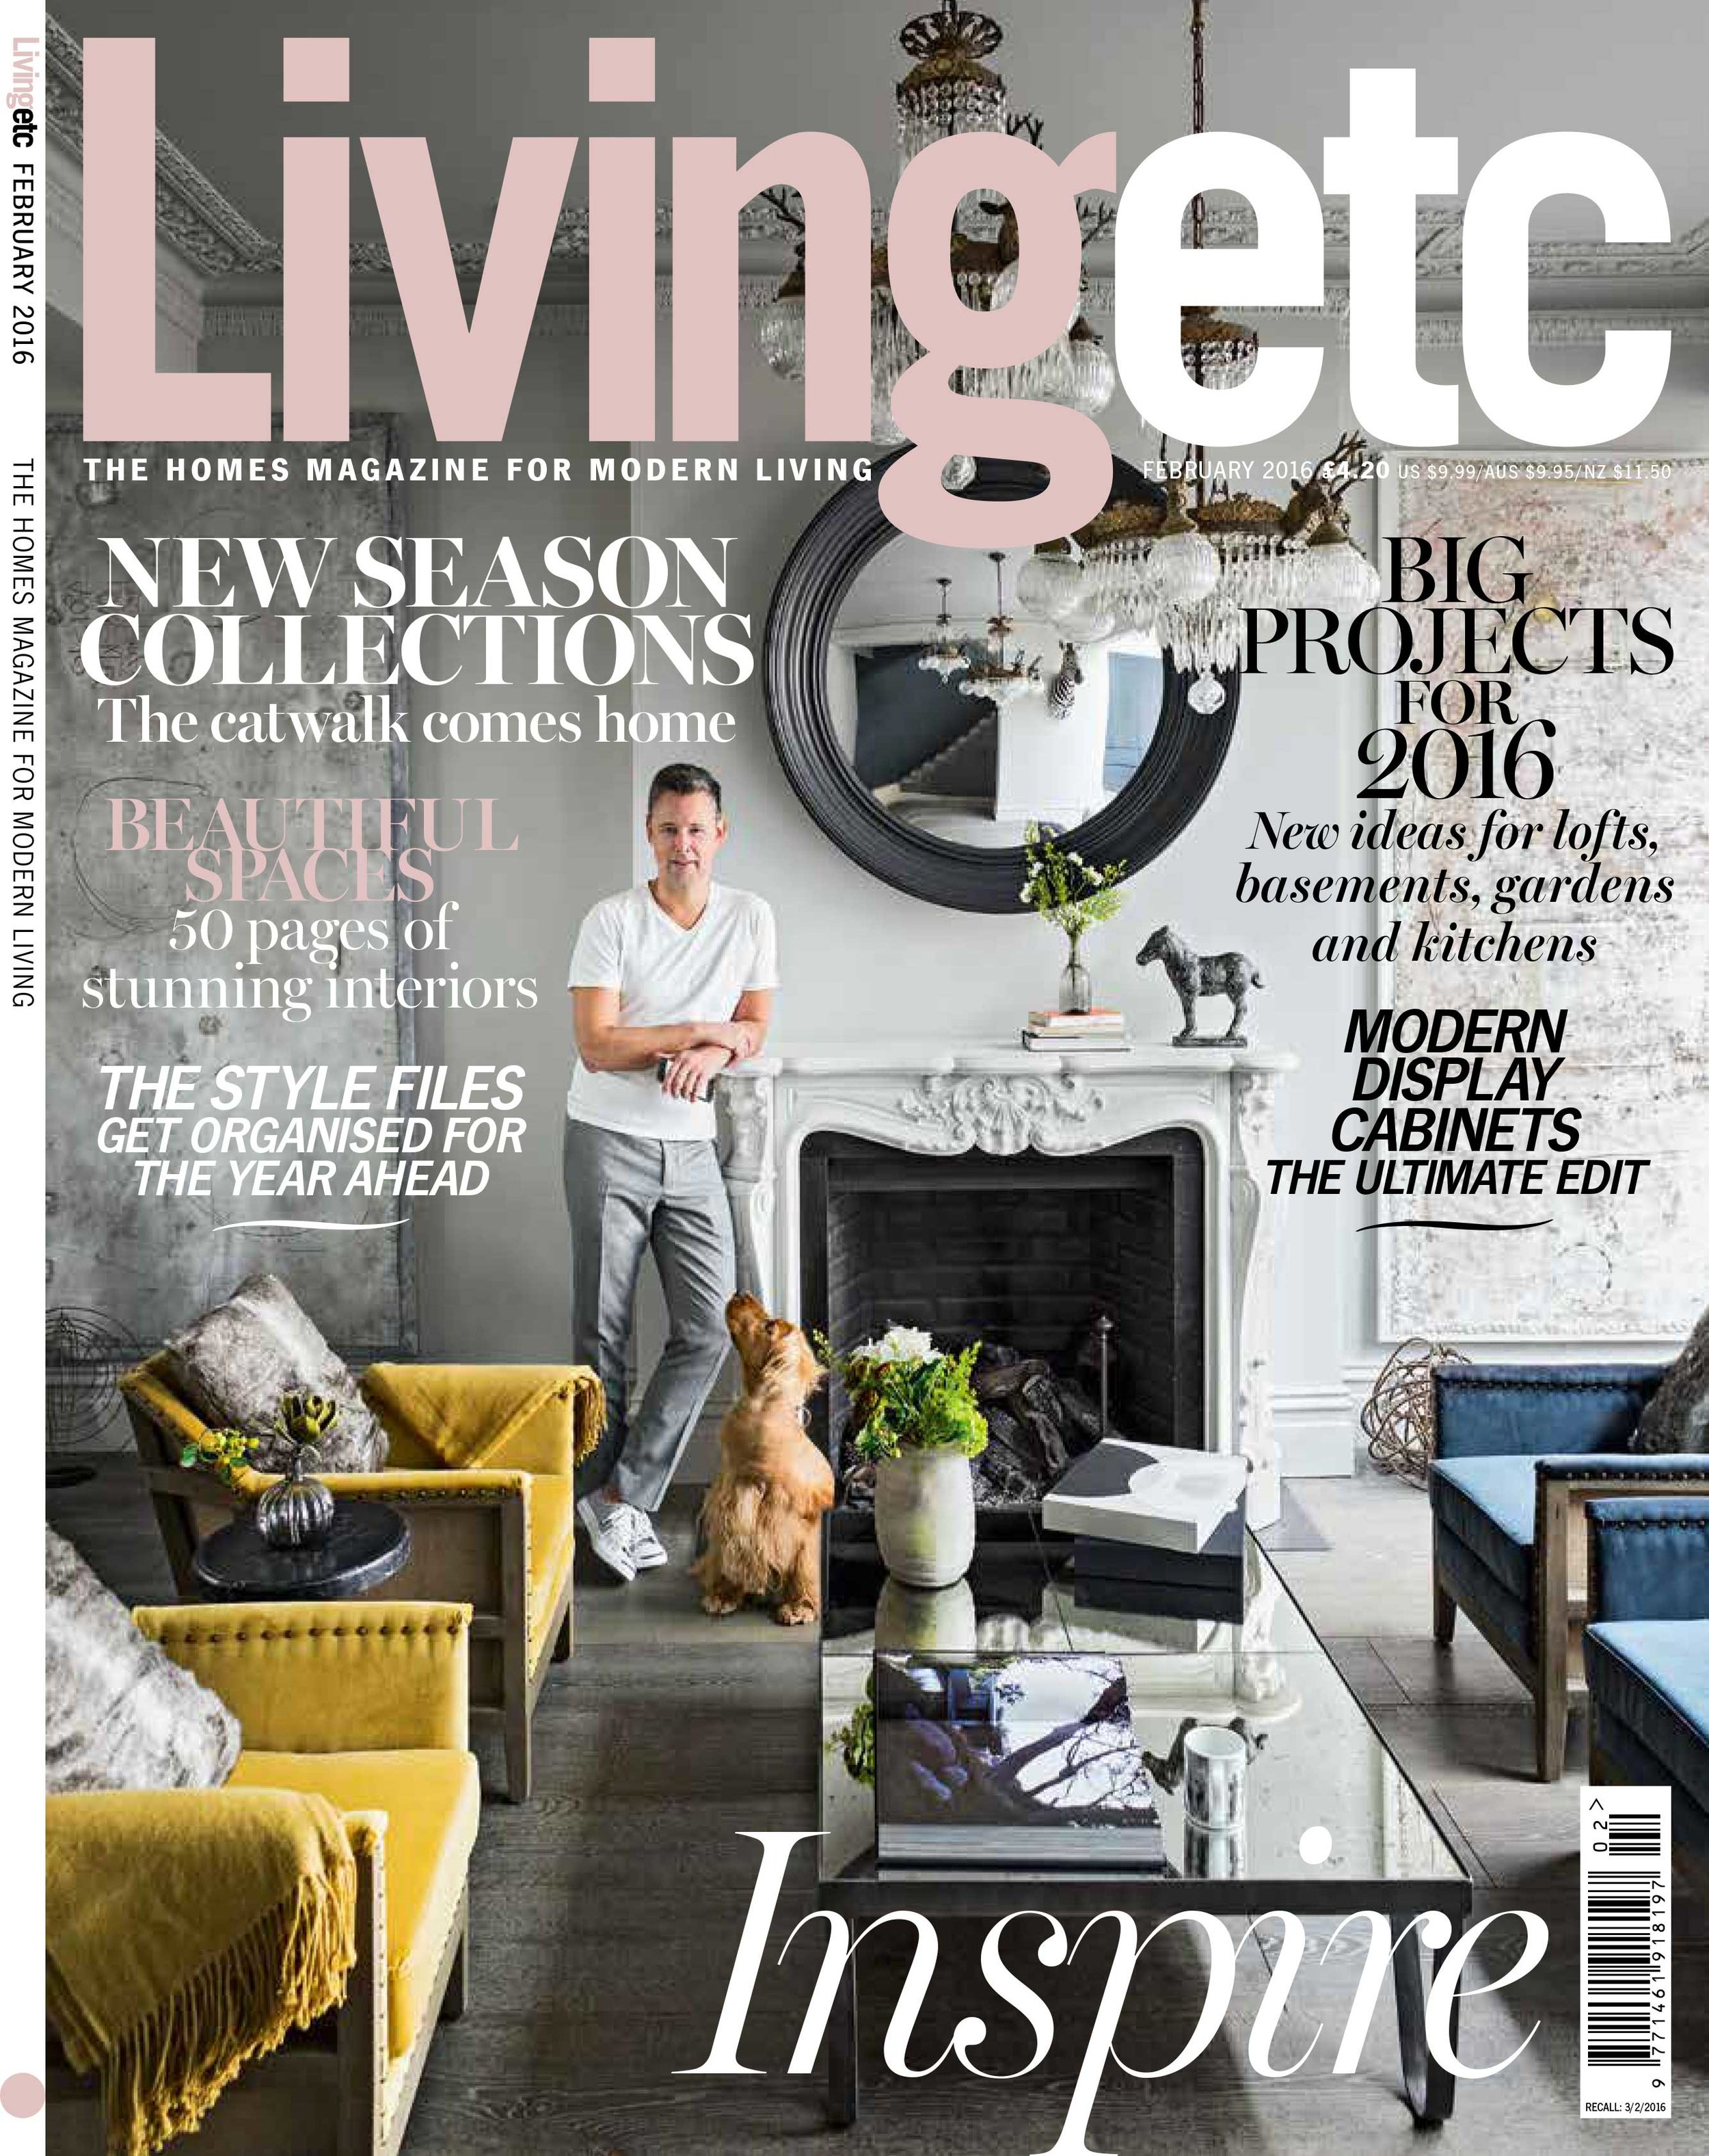 Living etc - February 2016 issue